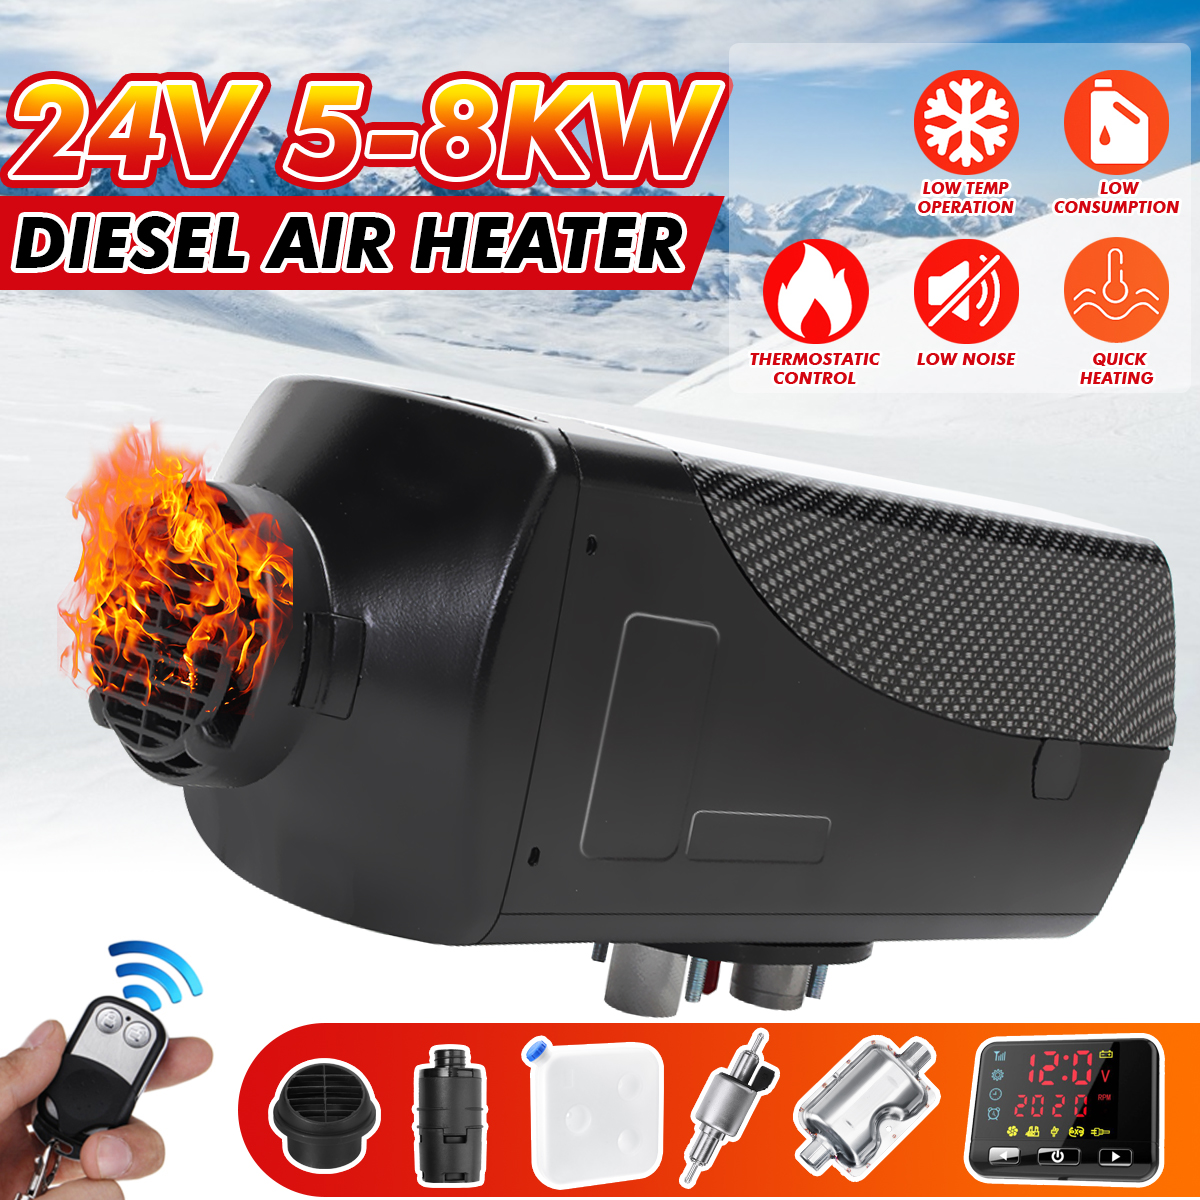 8KW 24V Local gold  Air Diesels Heater Parking Heater With Remote Control LCD Monitor Car Heater Silencer For free|Heating & Fans| |  - title=